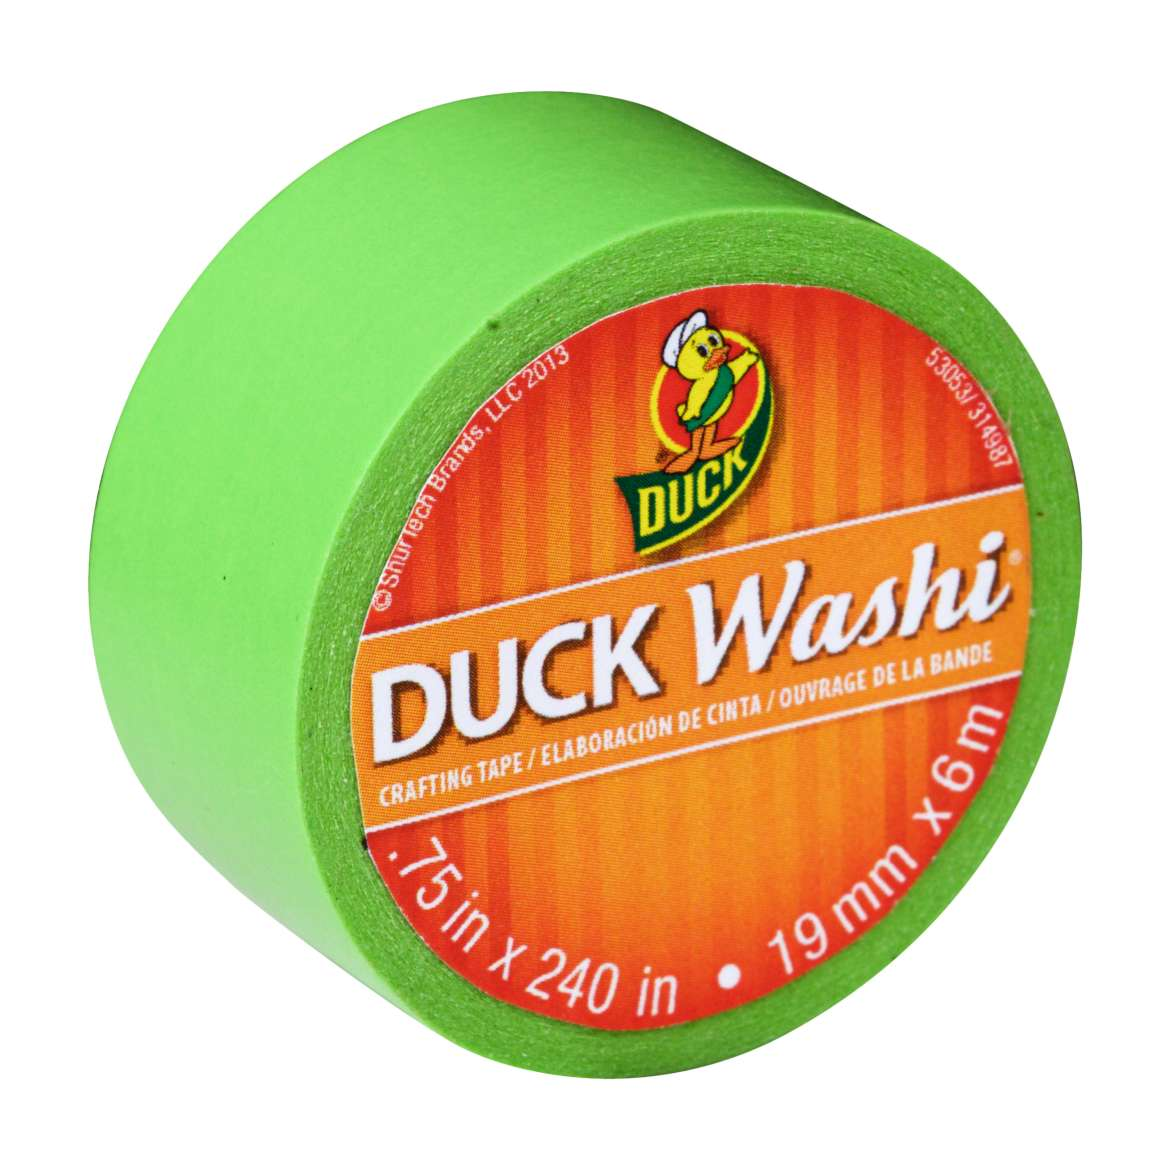 Duck Washi® Crafting Tape - Lime, .75 in. x 240 in. Image